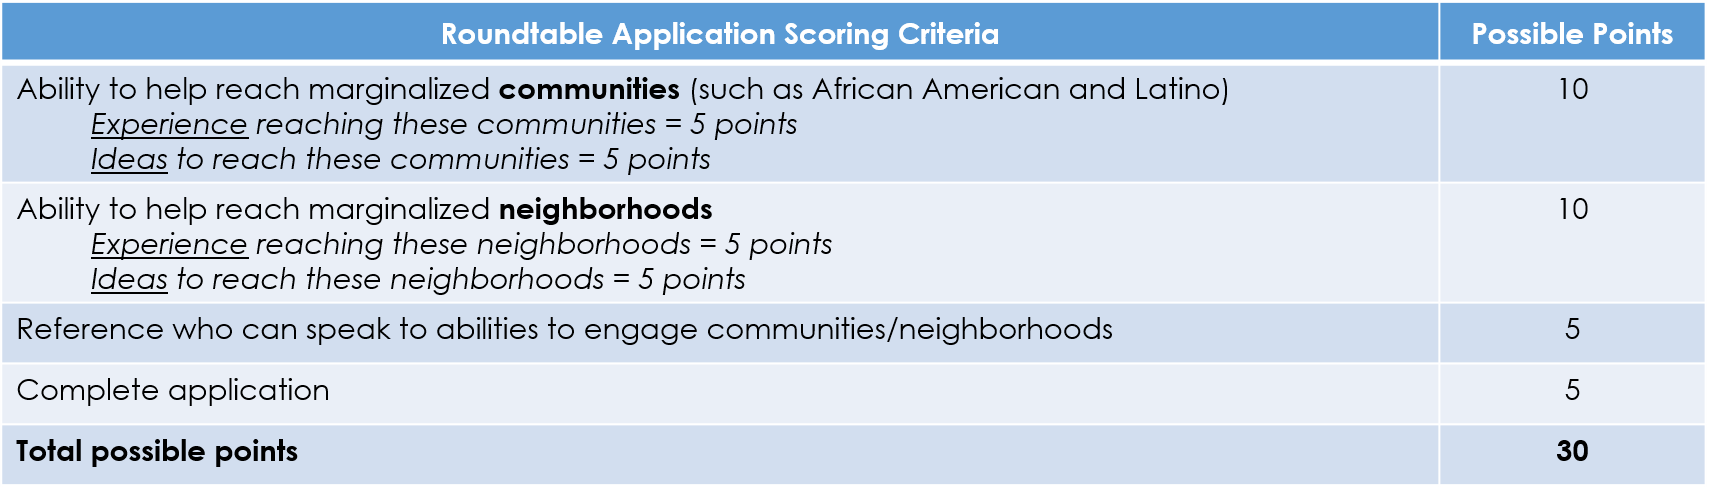 Below is an outline of the scoring framework that will be used to evaluate Roundtable applications: